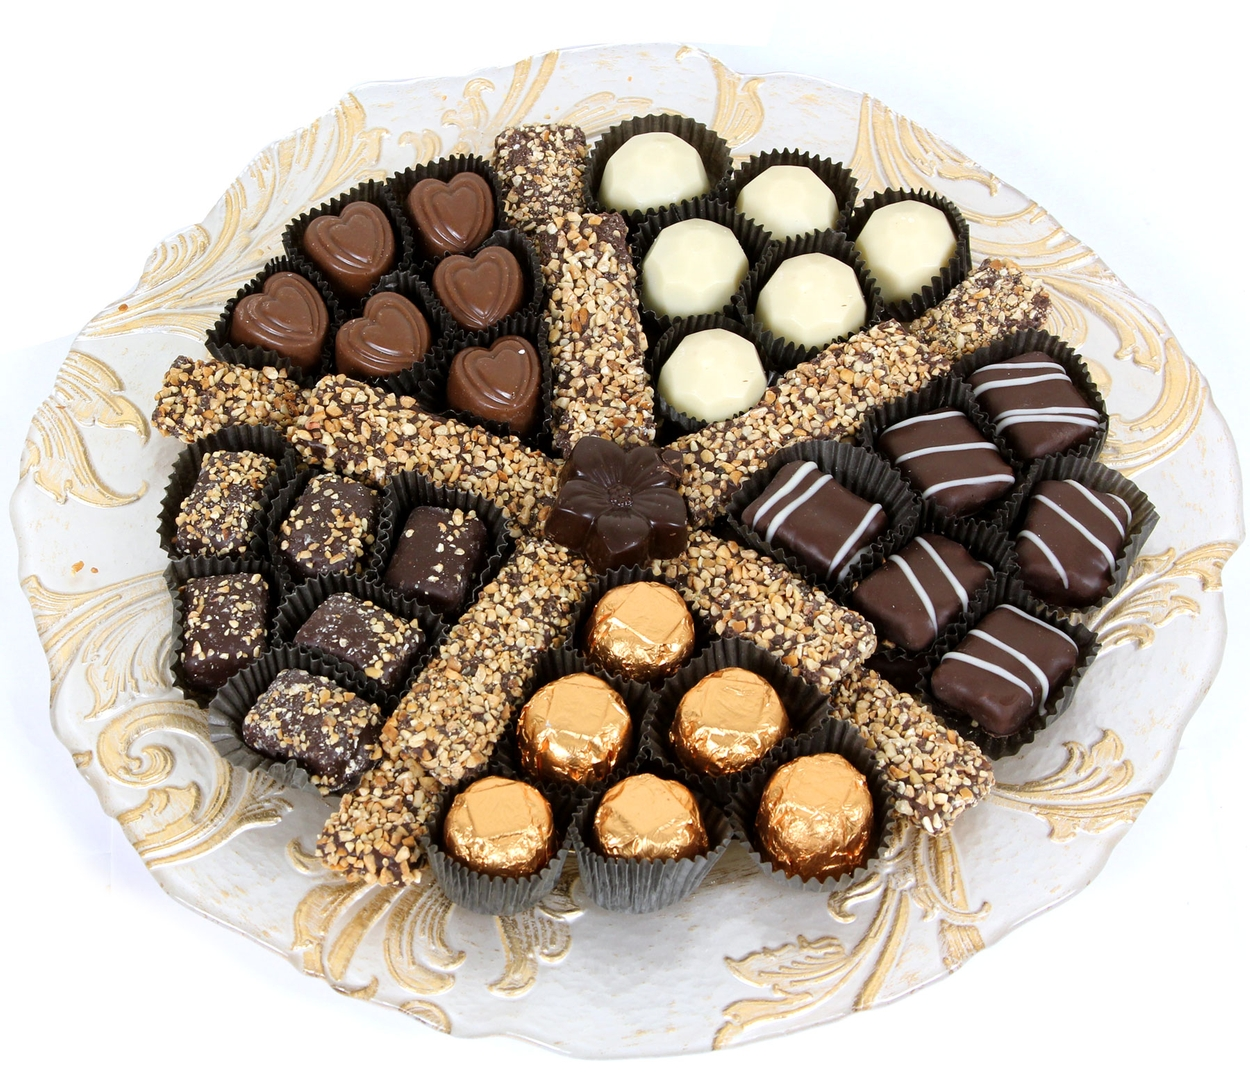 Elegant Glass Chocolate Gift Tray - Gold • Non-Dairy (Parve) Dark ...